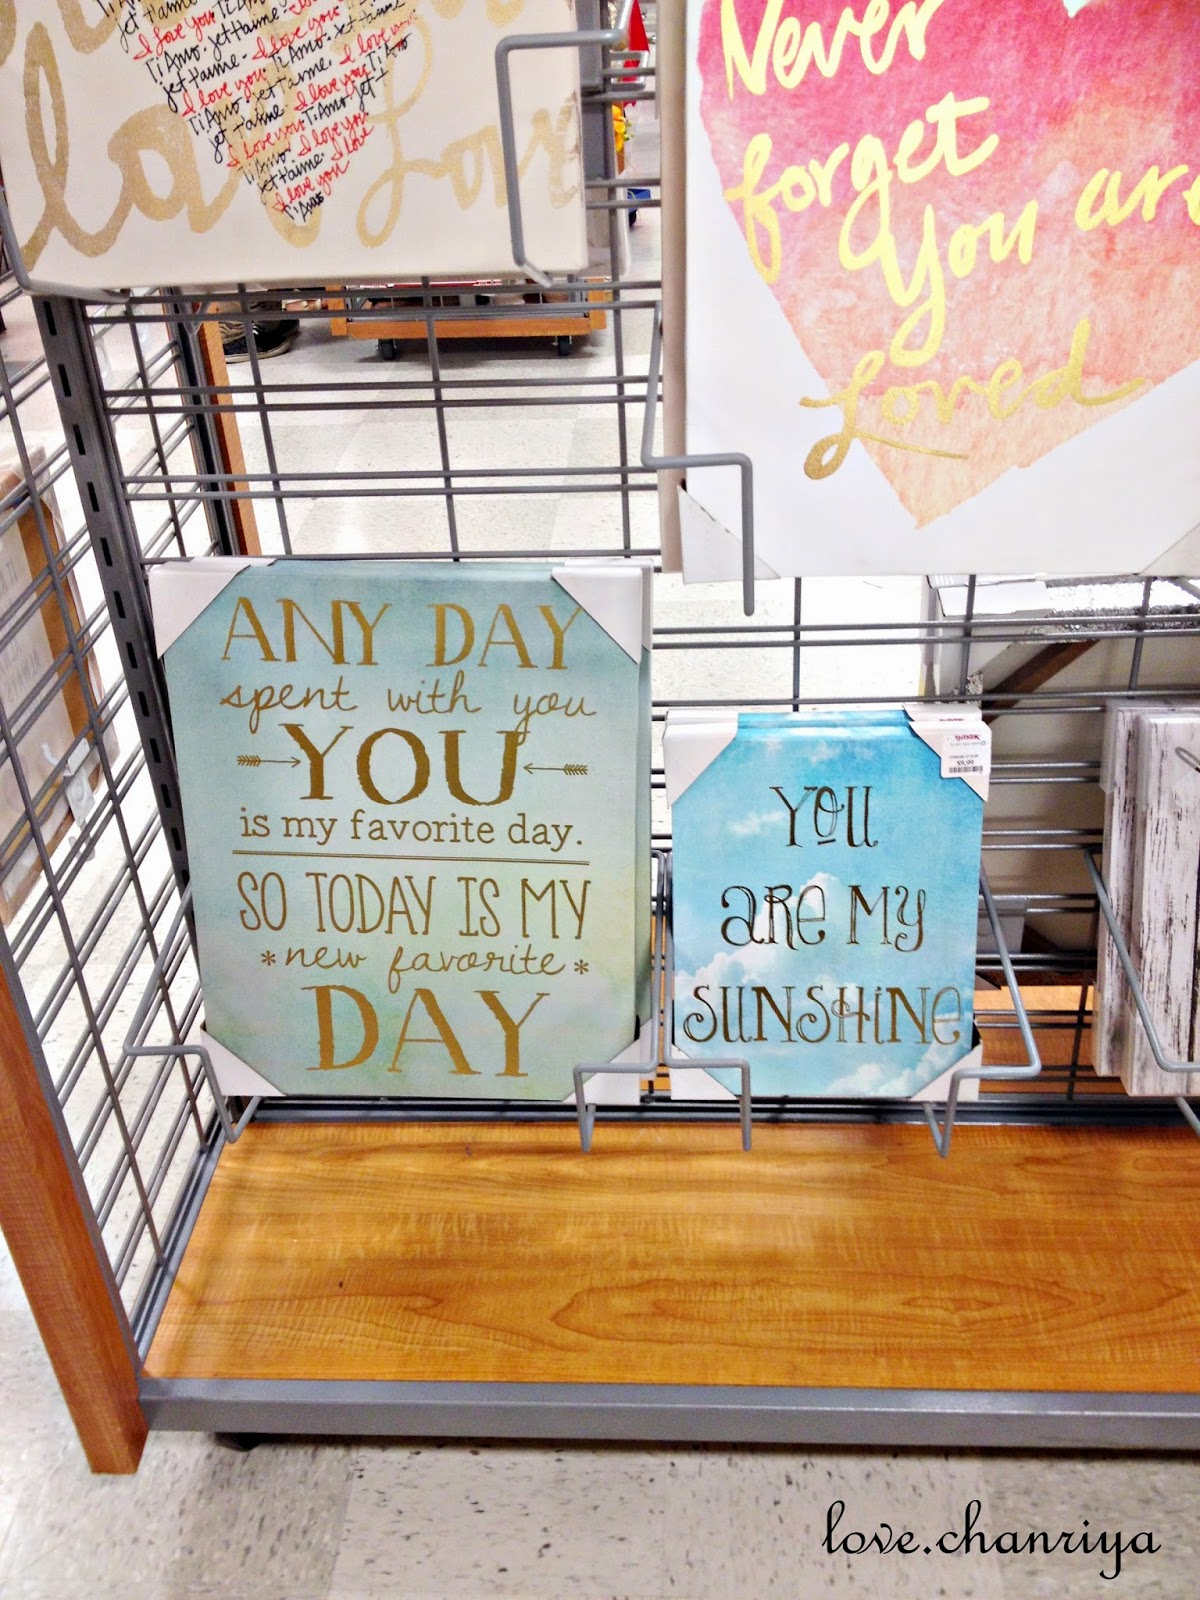 Cute Home Decor From Tjmaxx Hi Love I Wanted To Quickly Show You These Adorable Wall Decor Please Enjoy And Hope These Inspire You